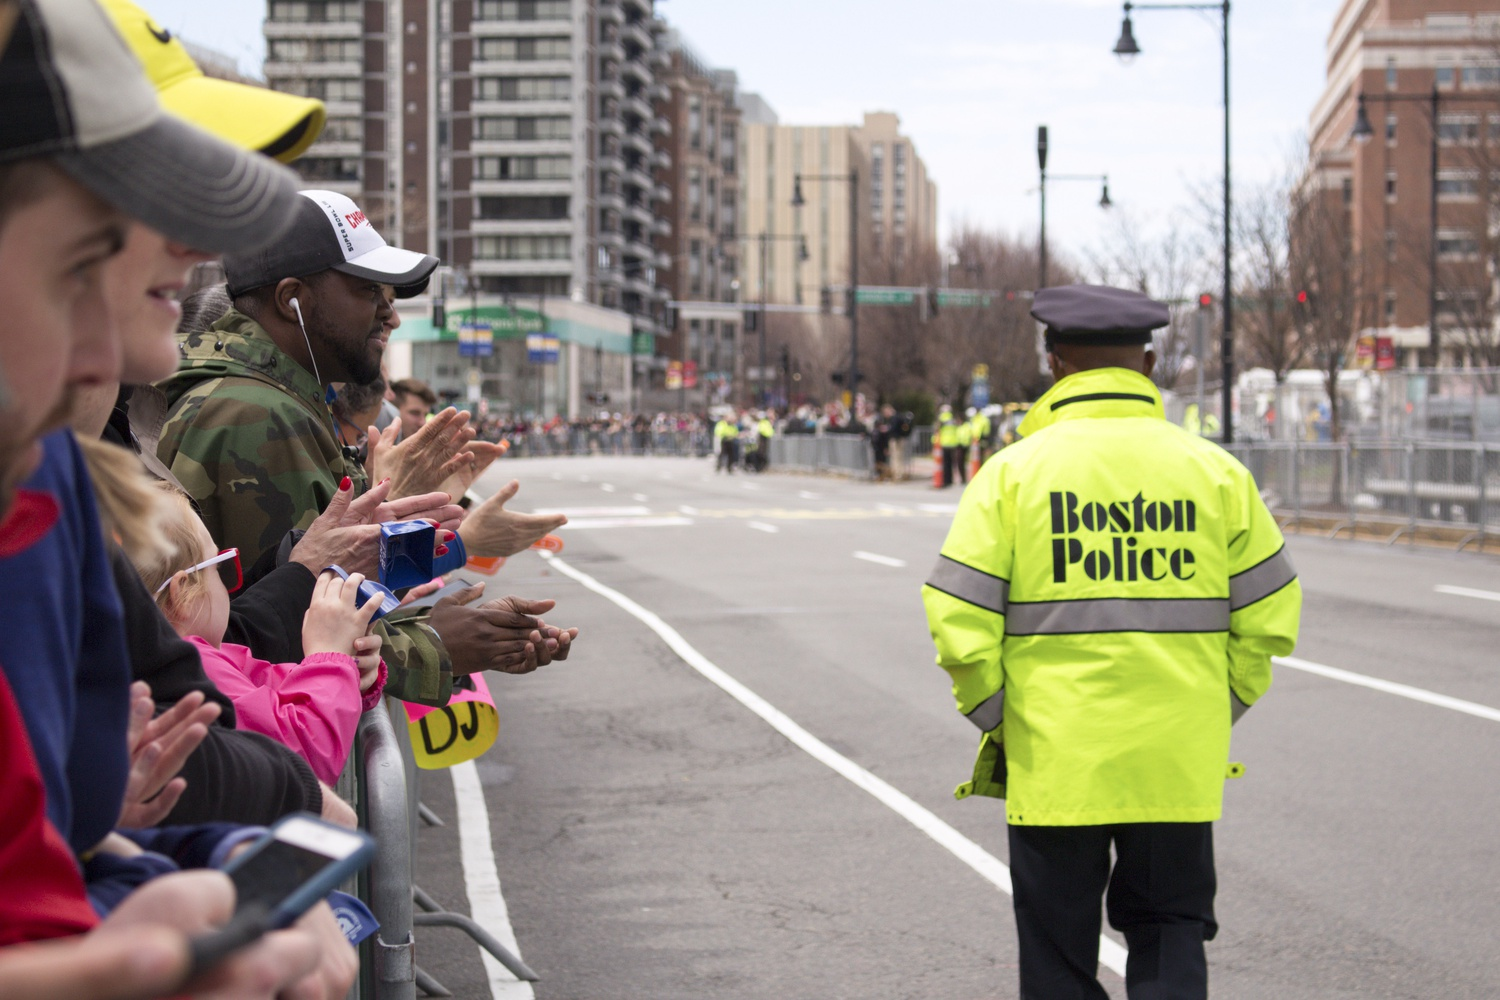 Crowds cheer on Boston Marathon runners as the Boston Police ensure the safety of the participants and onlookers.